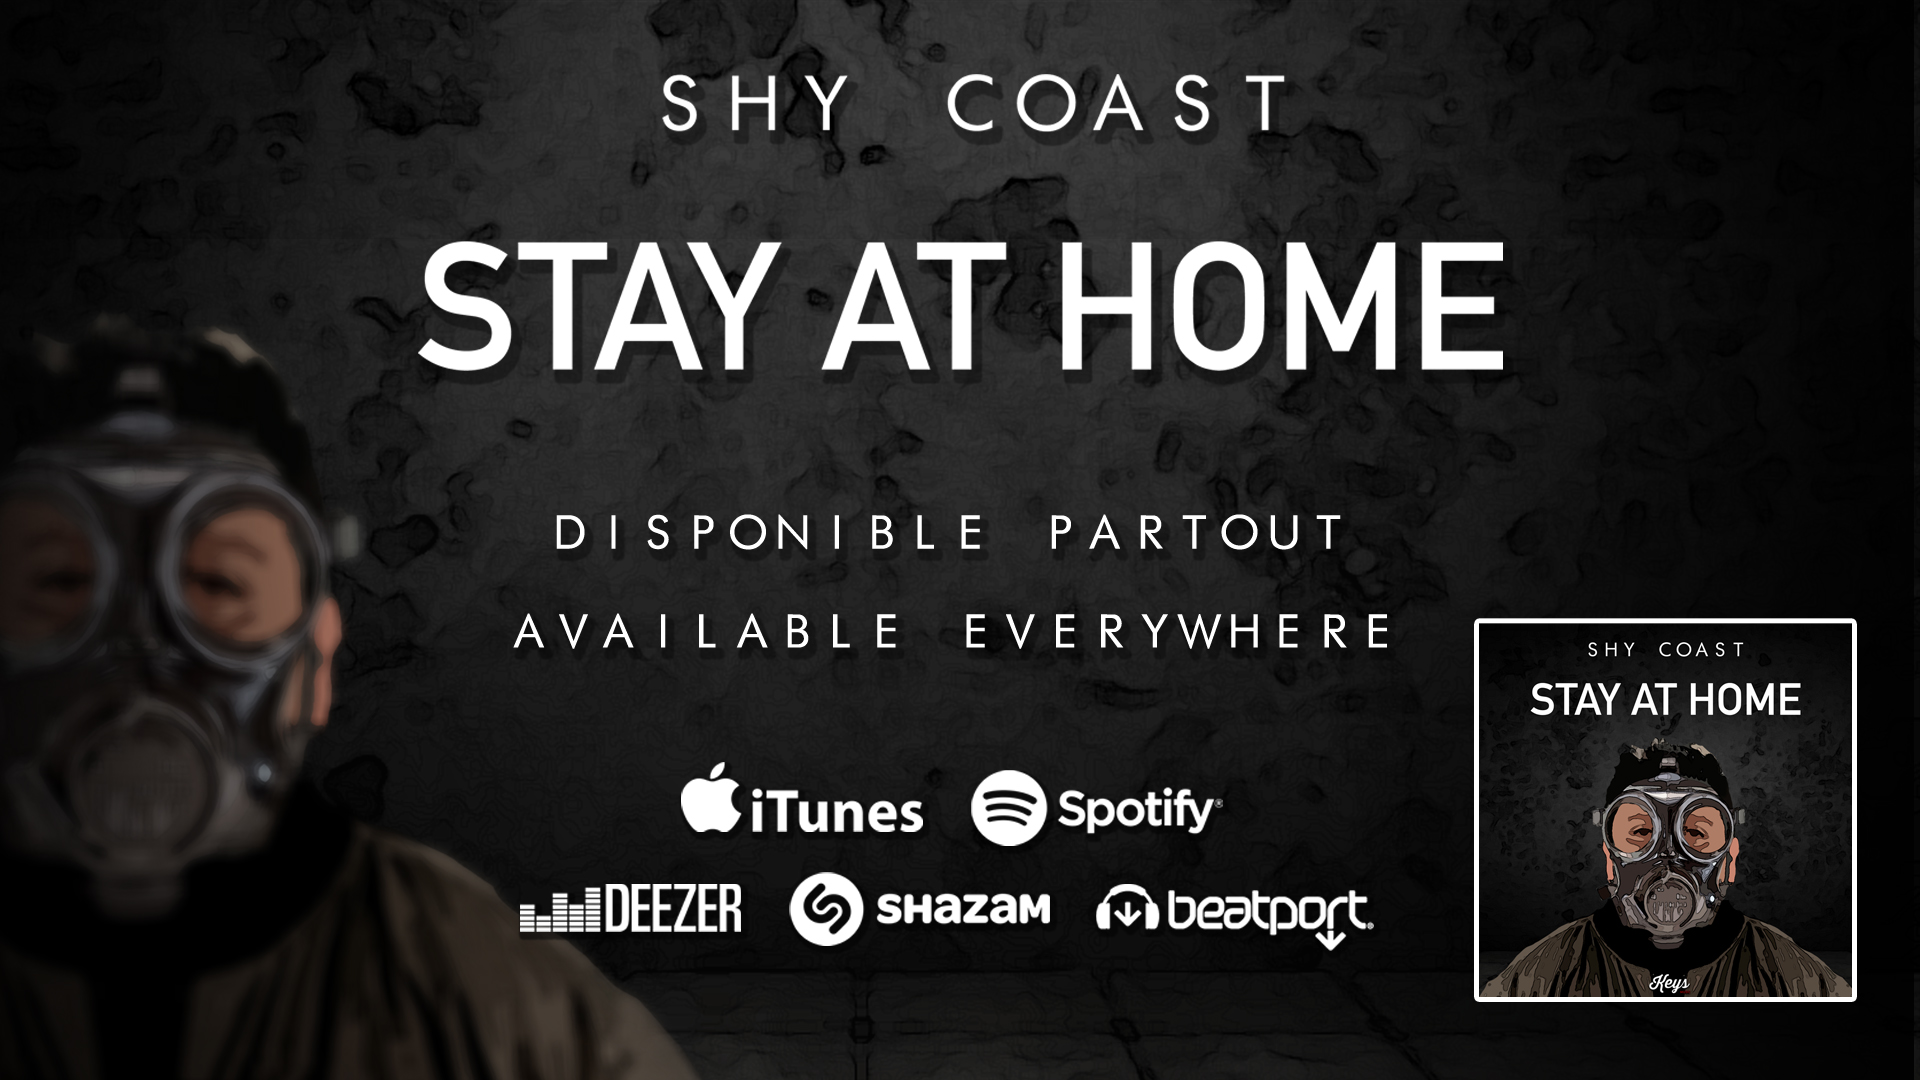 Shy Coast - Stay At Home